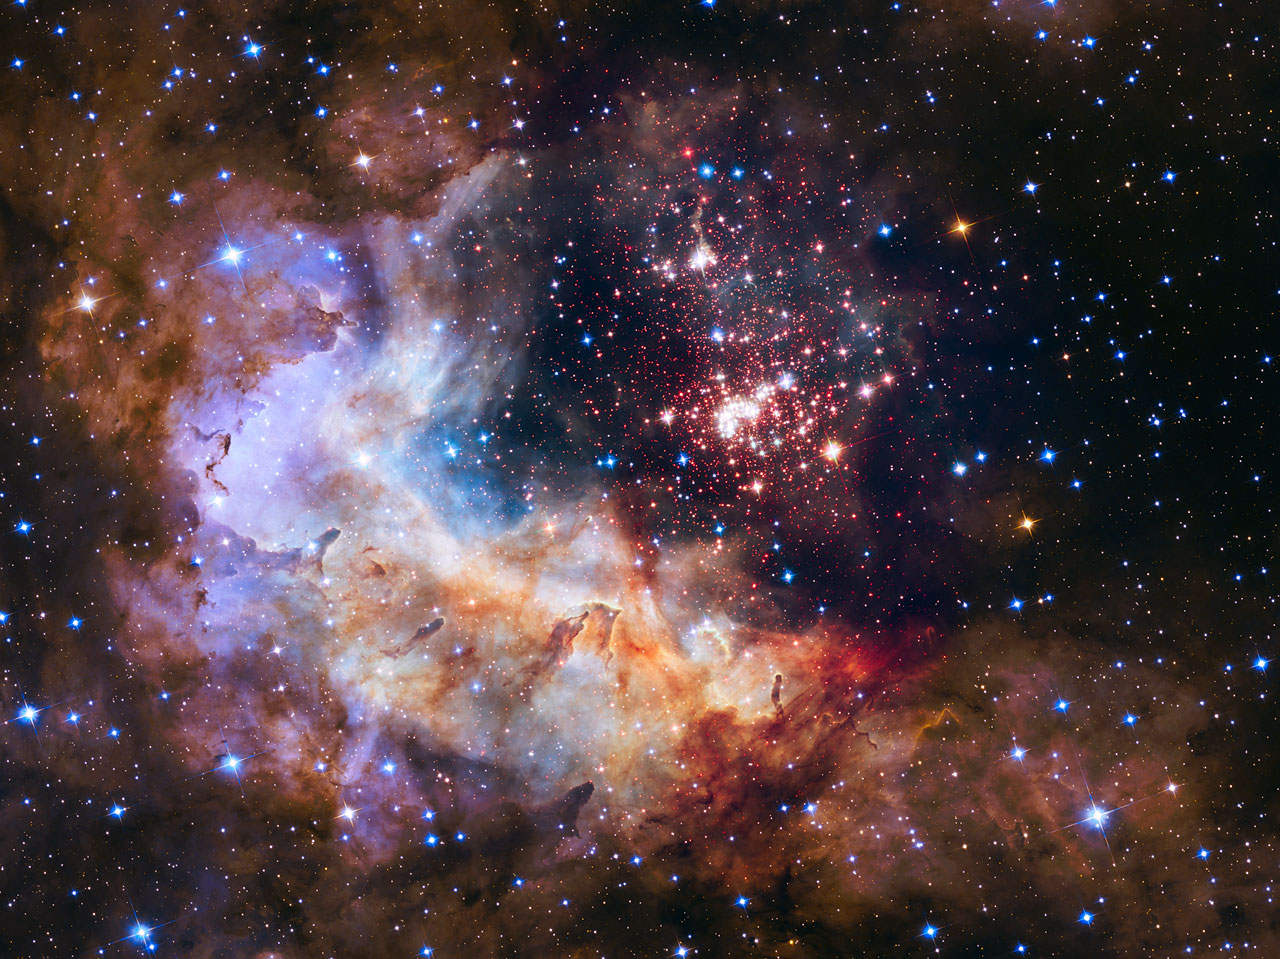 This NASA/ESA Hubble Space Telescope image of the cluster Westerlund 2 and its surroundings has been released to celebrate Hubble's 25th year in orbit and a quarter of a century of new discoveries, stunning images and outstanding science. The image's central region, containing the star cluster, blends visible-light data taken by the Advanced Camera for Surveys and near-infrared exposures taken by the Wide Field Camera 3. The surrounding region is composed of visible-light observations taken by the Advanced Camera for Surveys.